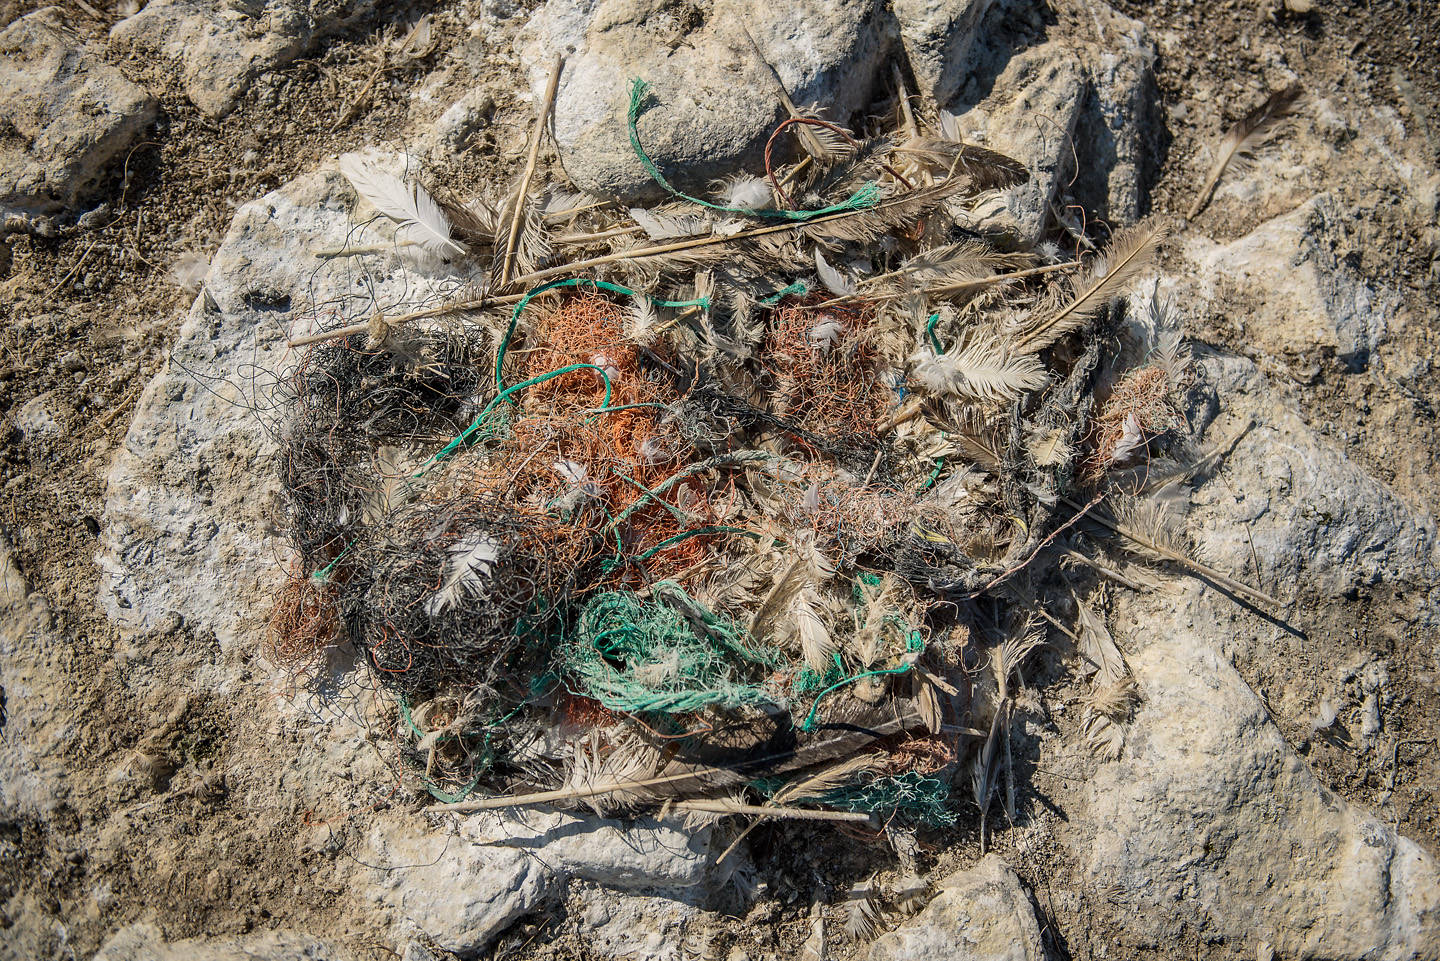 Removing the plastic would mean destroying nests and for a species which returns to the same nest each year, this would be too disruptive to the colony